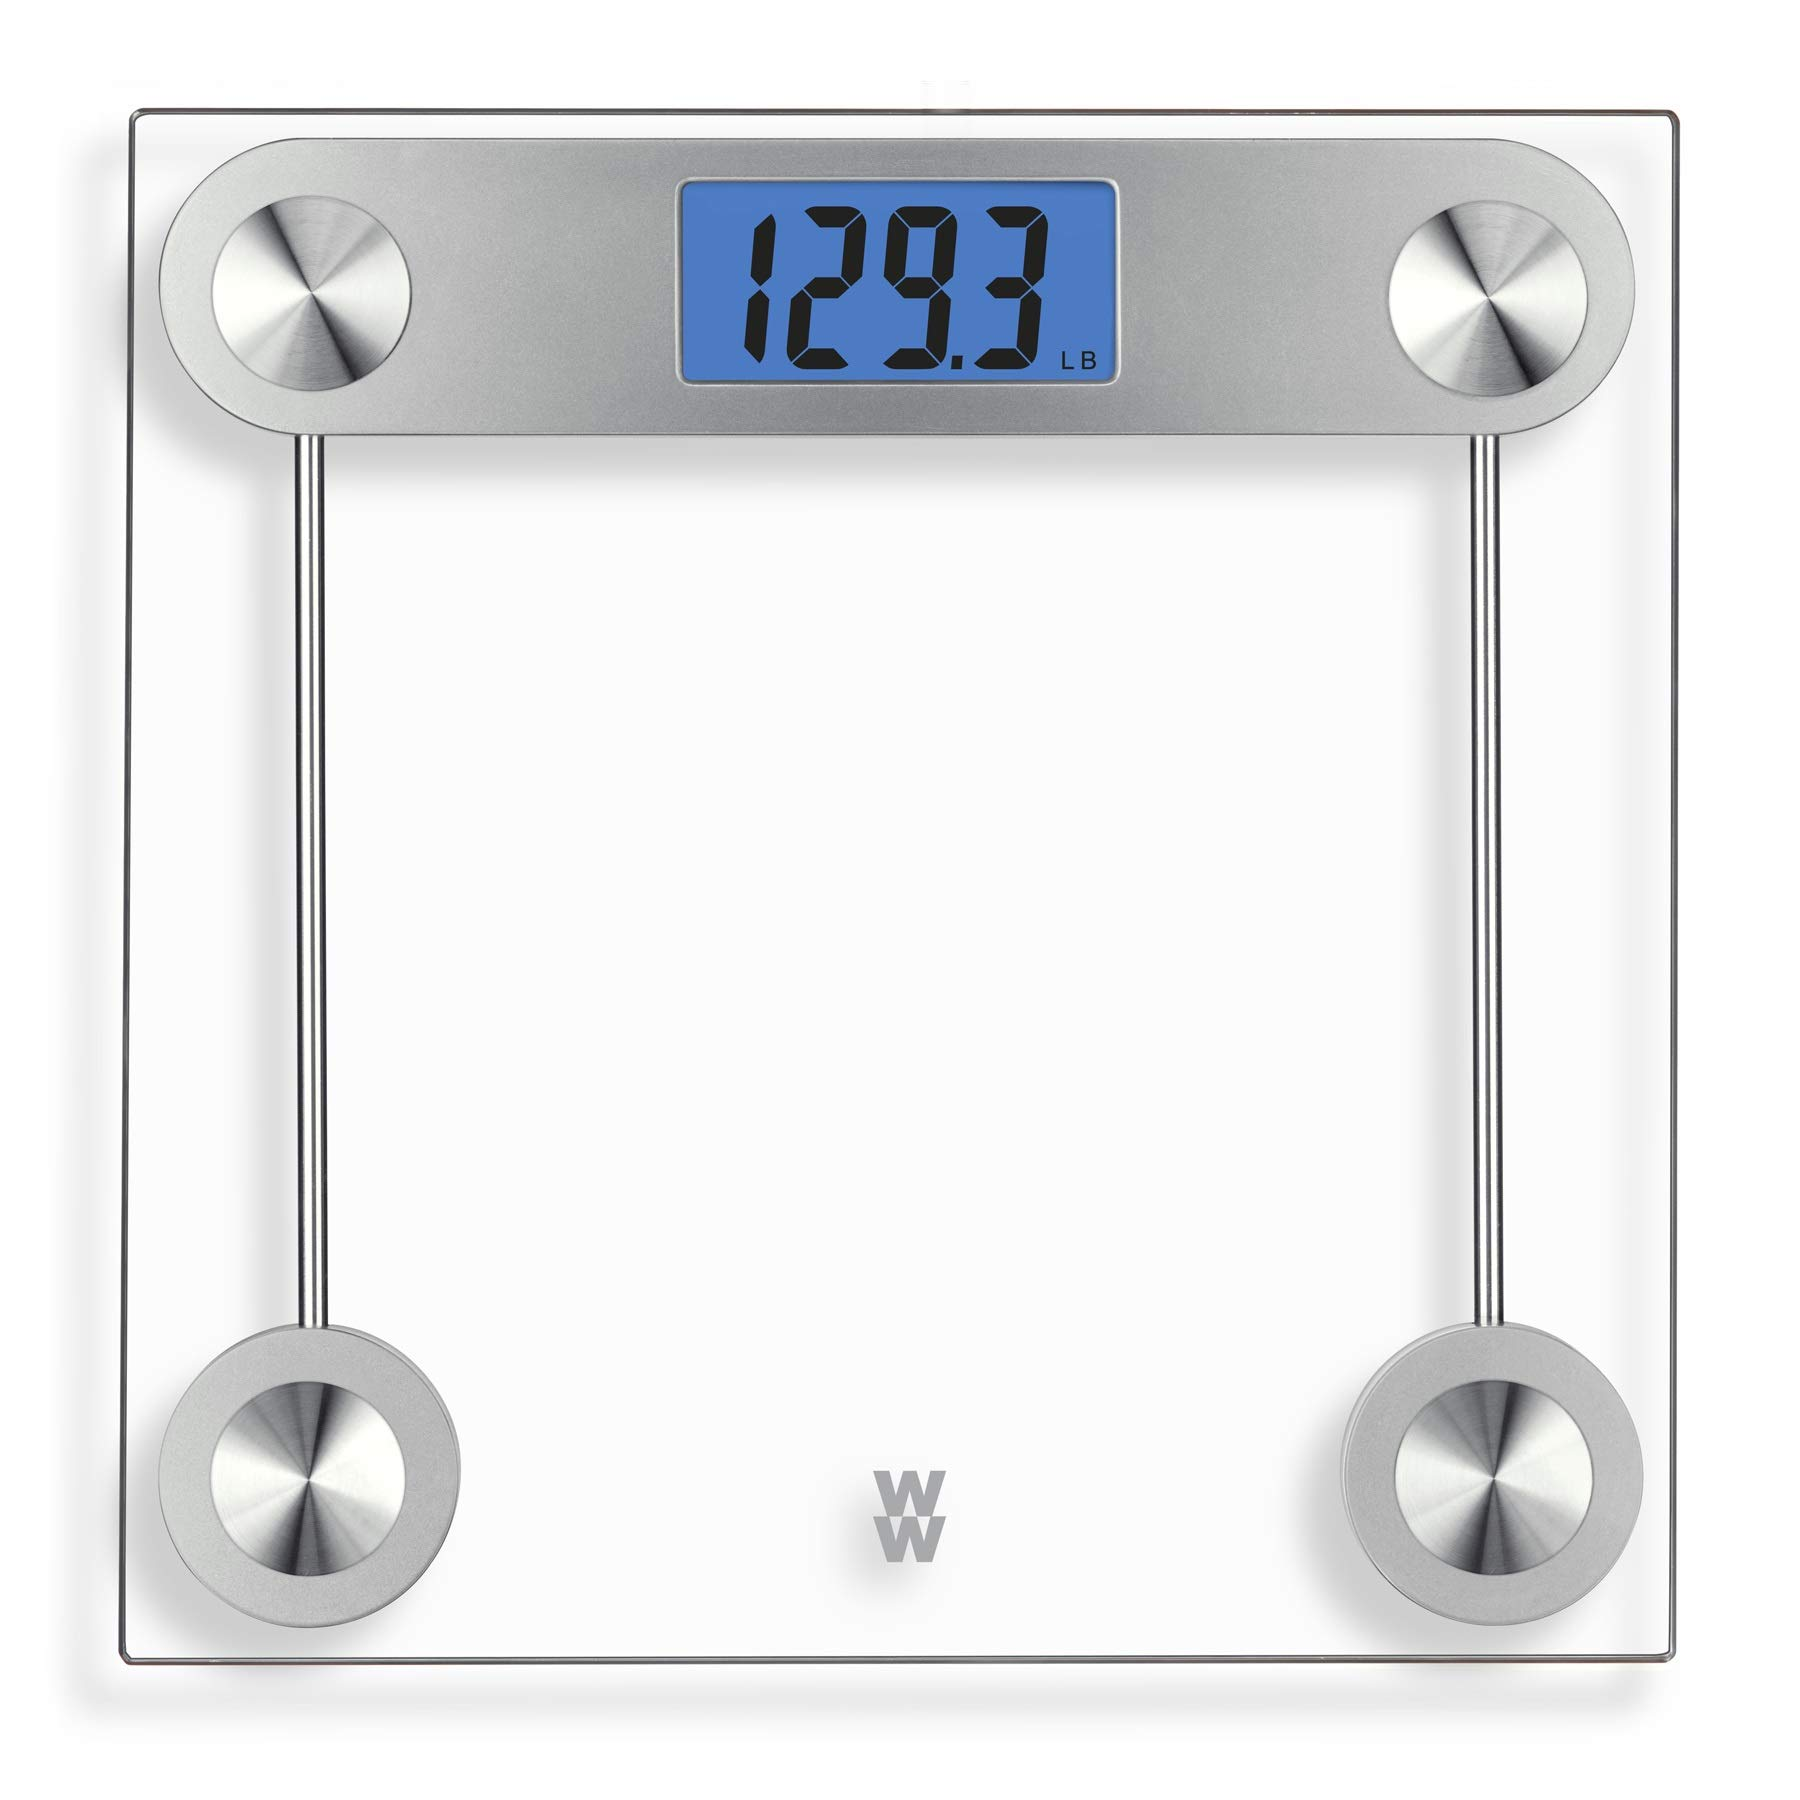 Weight Watchers by Conair Digital Glass Bathroom Scale; 400 lb. capacity; Elegant Gold Finish Bath Scale by Conair (Image #1)